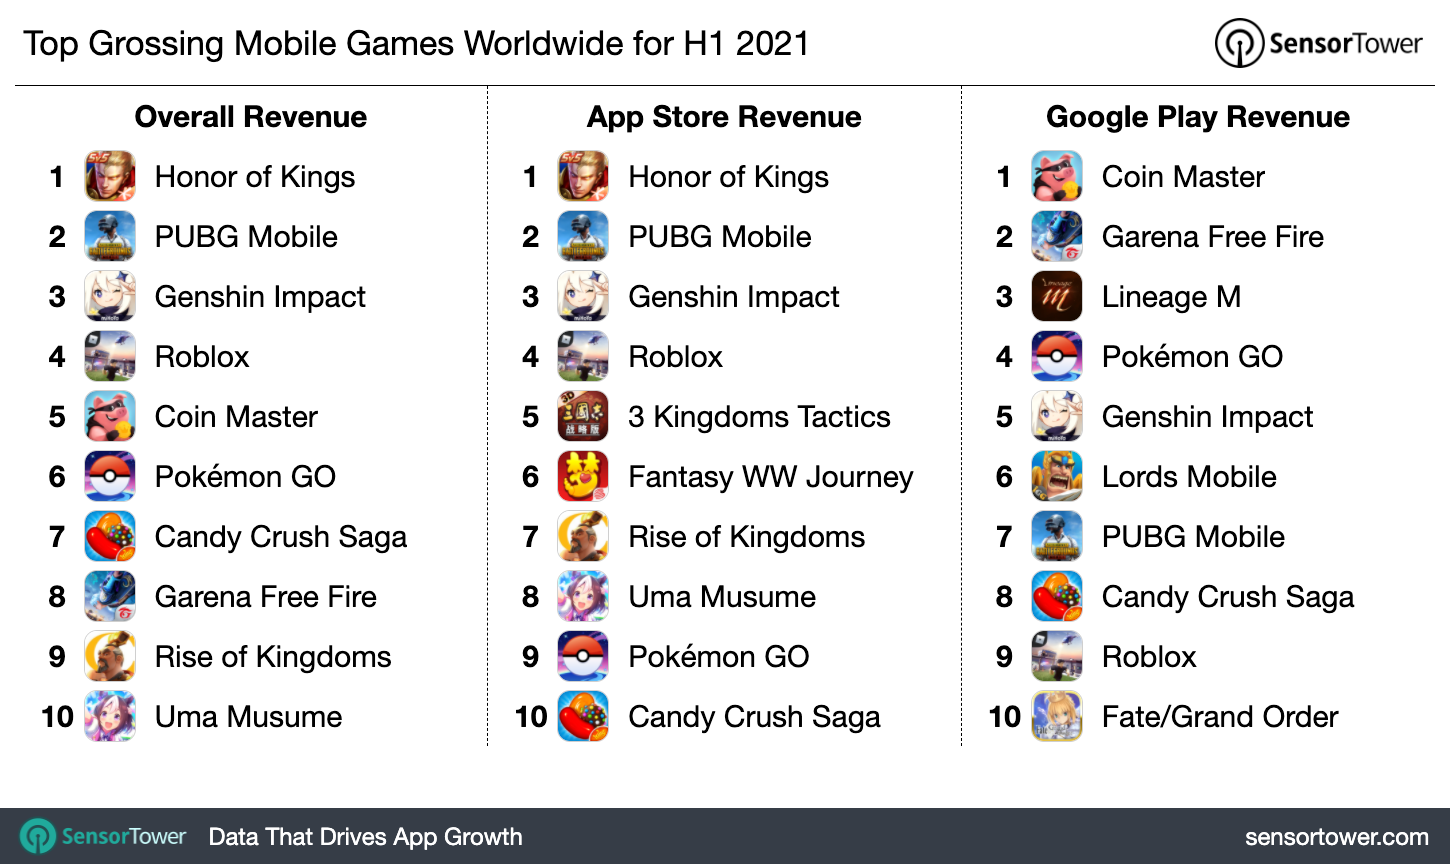 Top grossing mobile games 2021